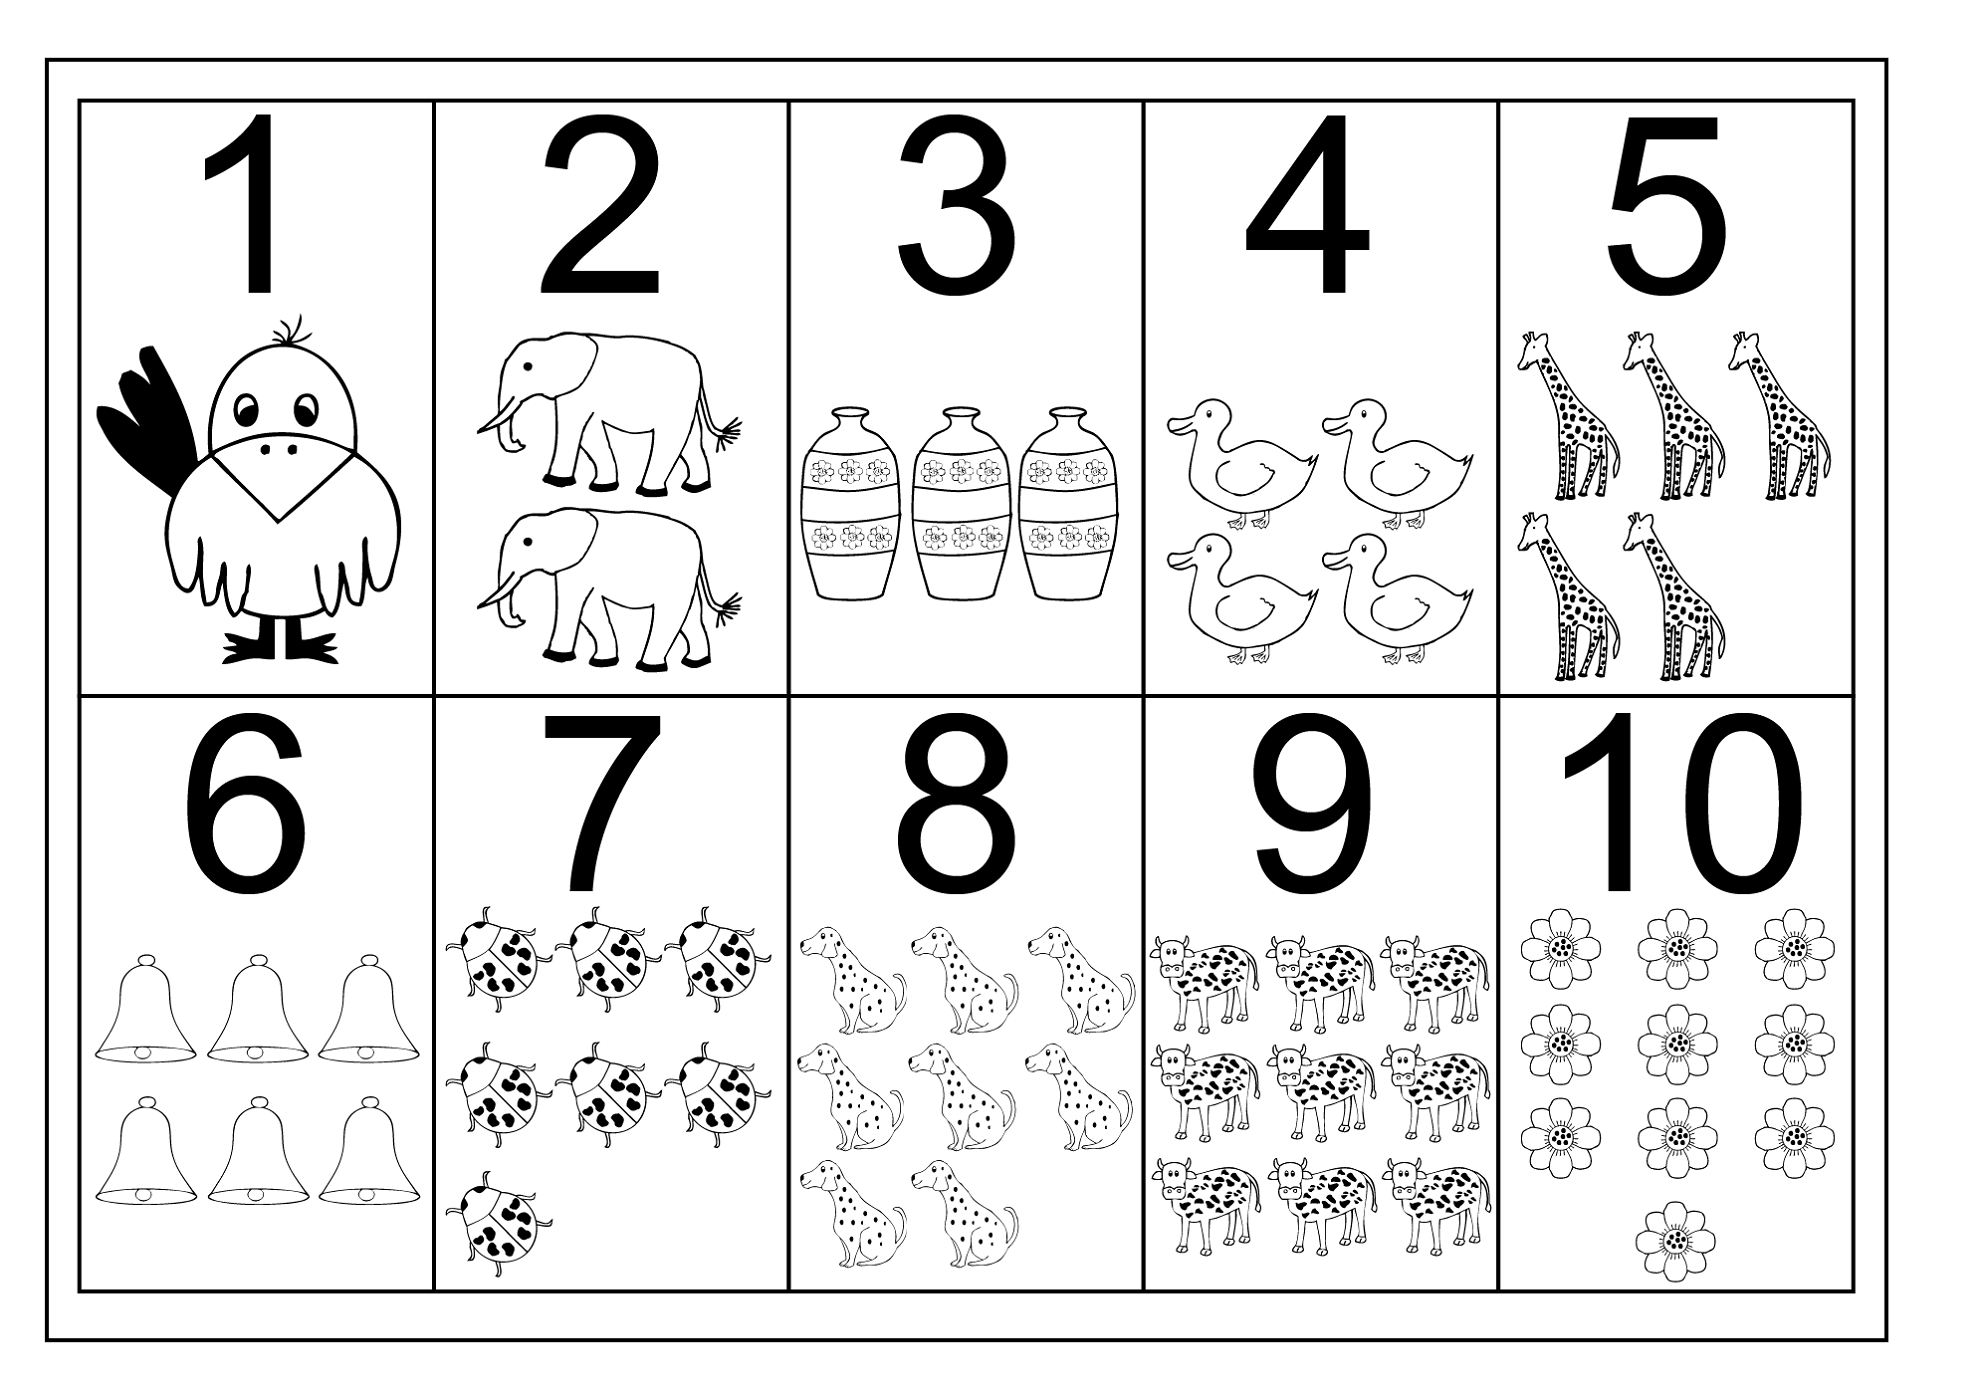 Worksheets Counting Worksheets 1-10 printable number charts 1 10 activity shelter chart counting